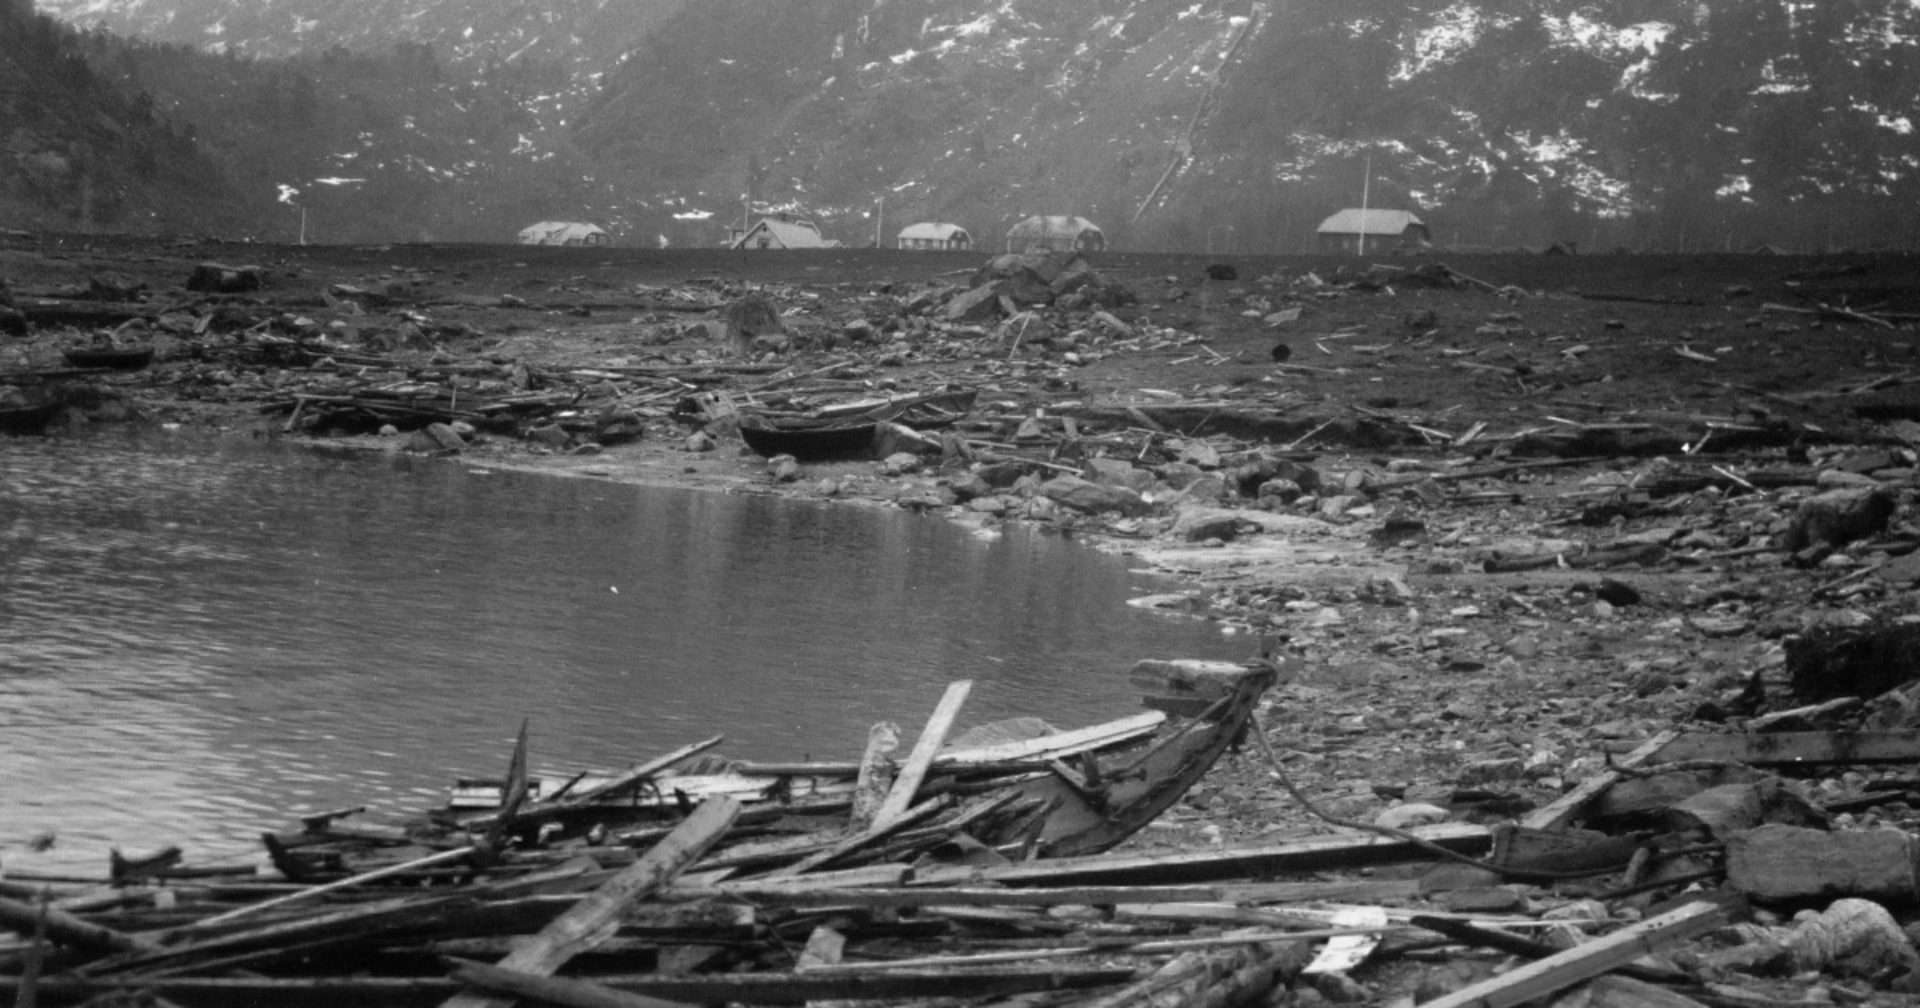 Tafjord after the tsunamis had come on April 7th, 1934.